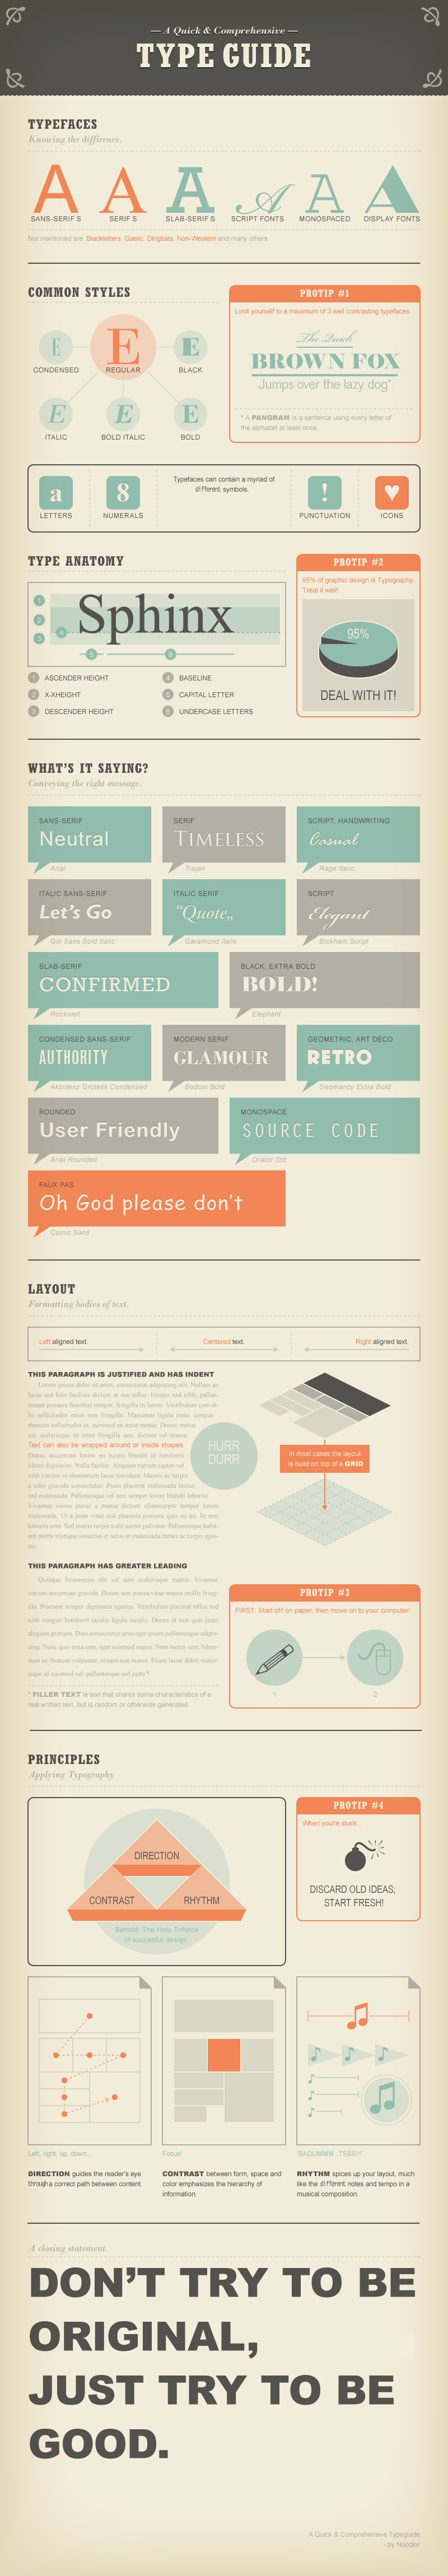 a quick and comprehensive type guide infographic daily infographic